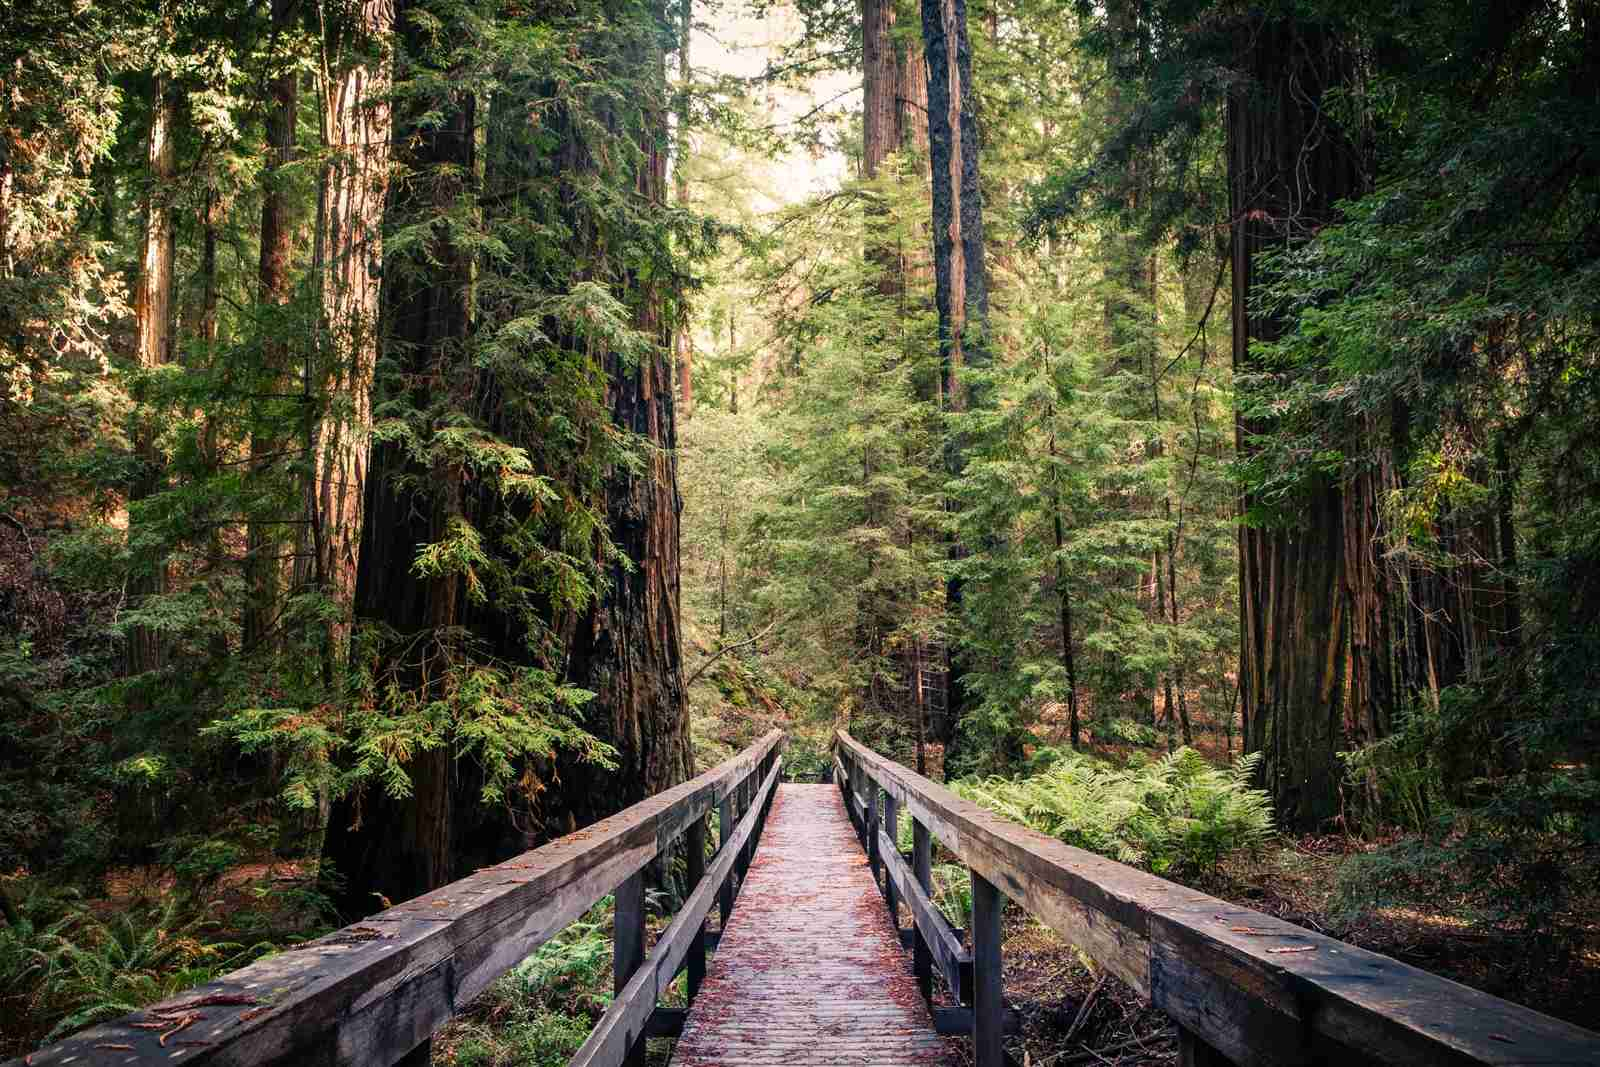 Montgomery Woods State Natural Reserve in Mendocino county. (Photo by GaryKavanagh/Getty Images)